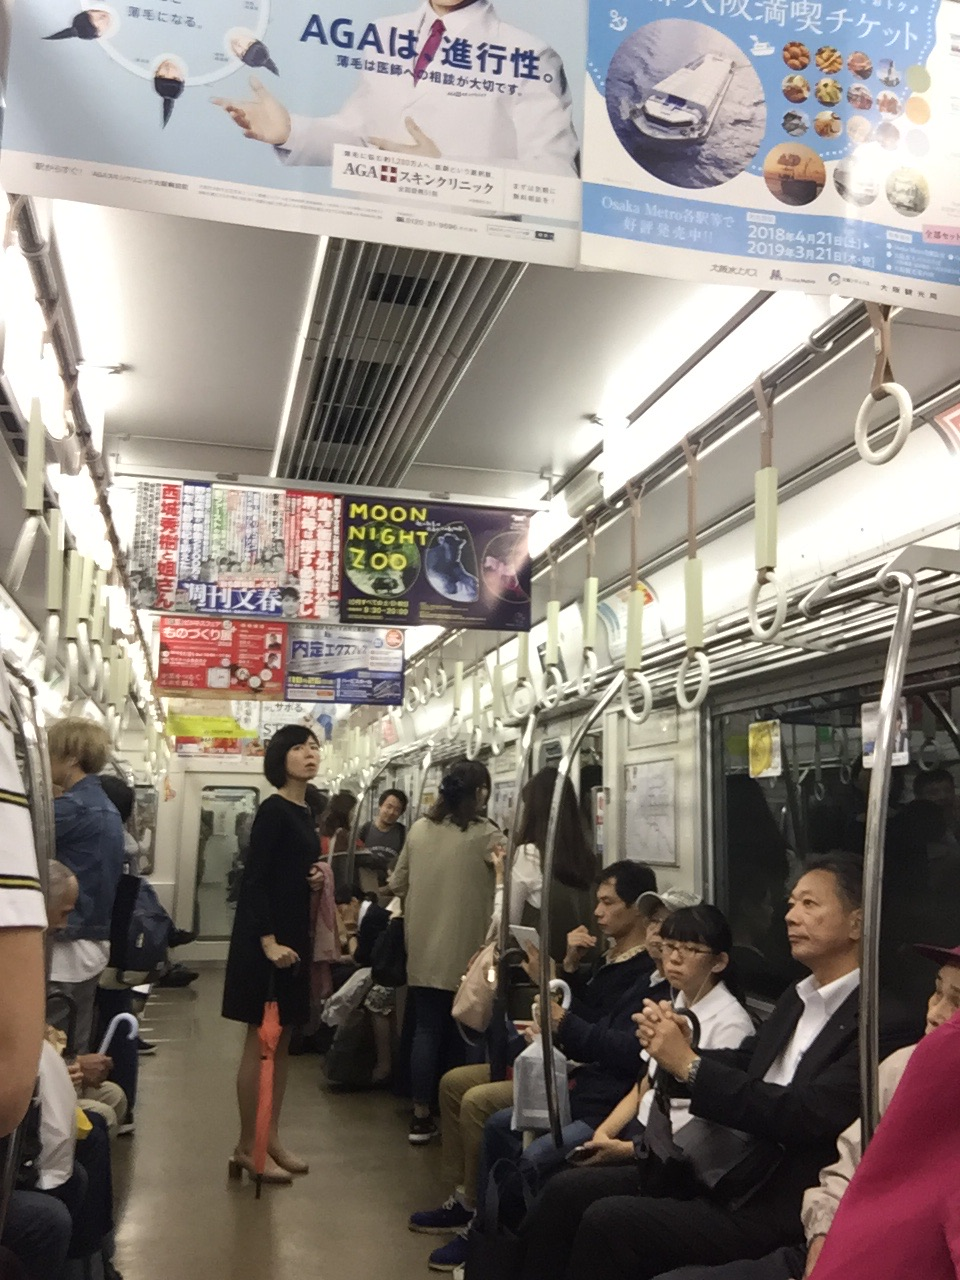 Subway train during commute.